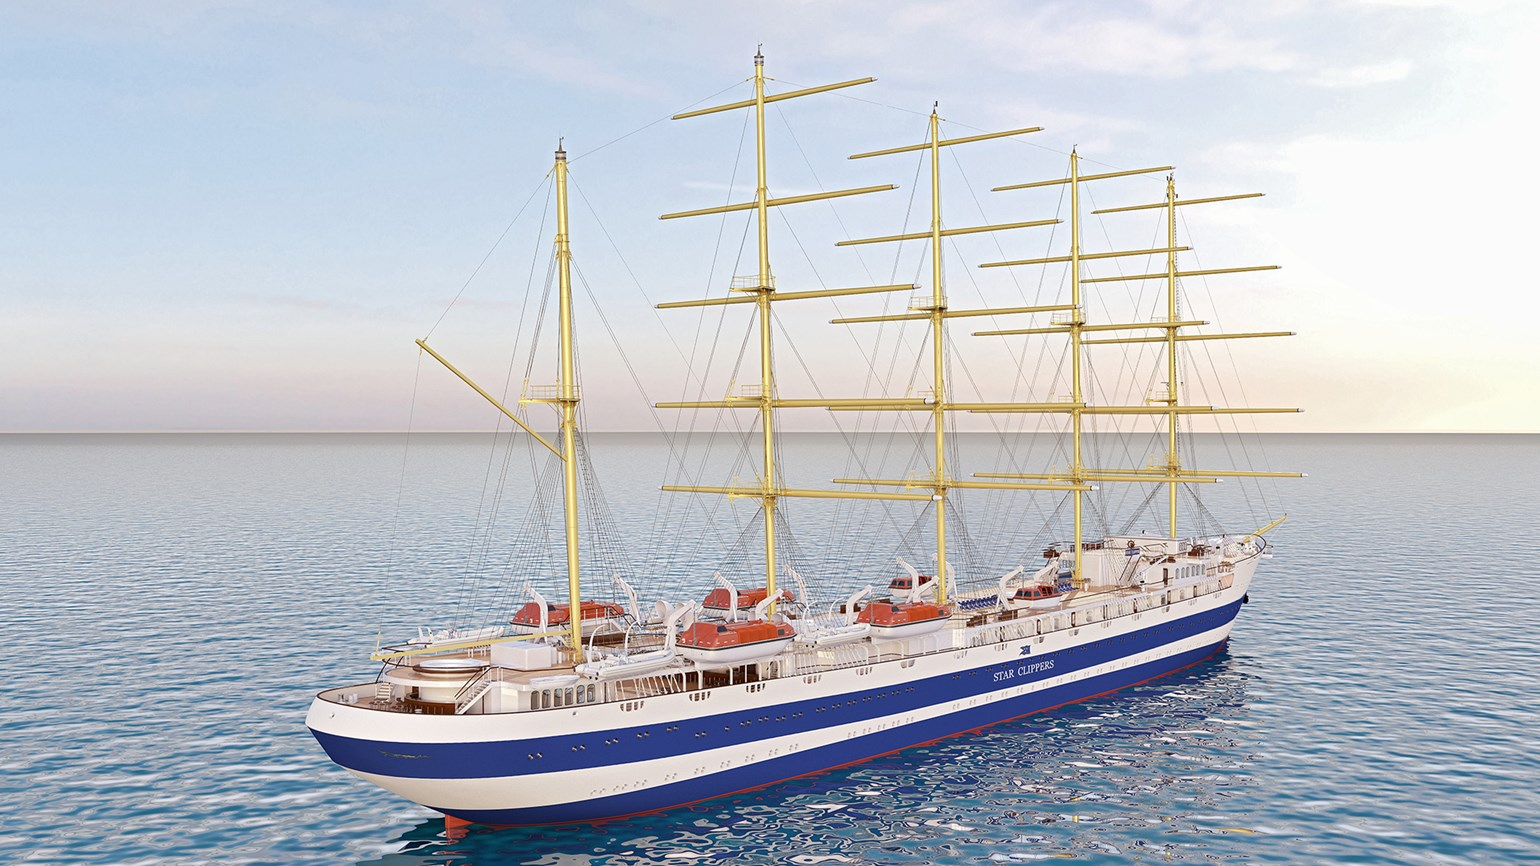 Star Clippers building new masted ship for 2017